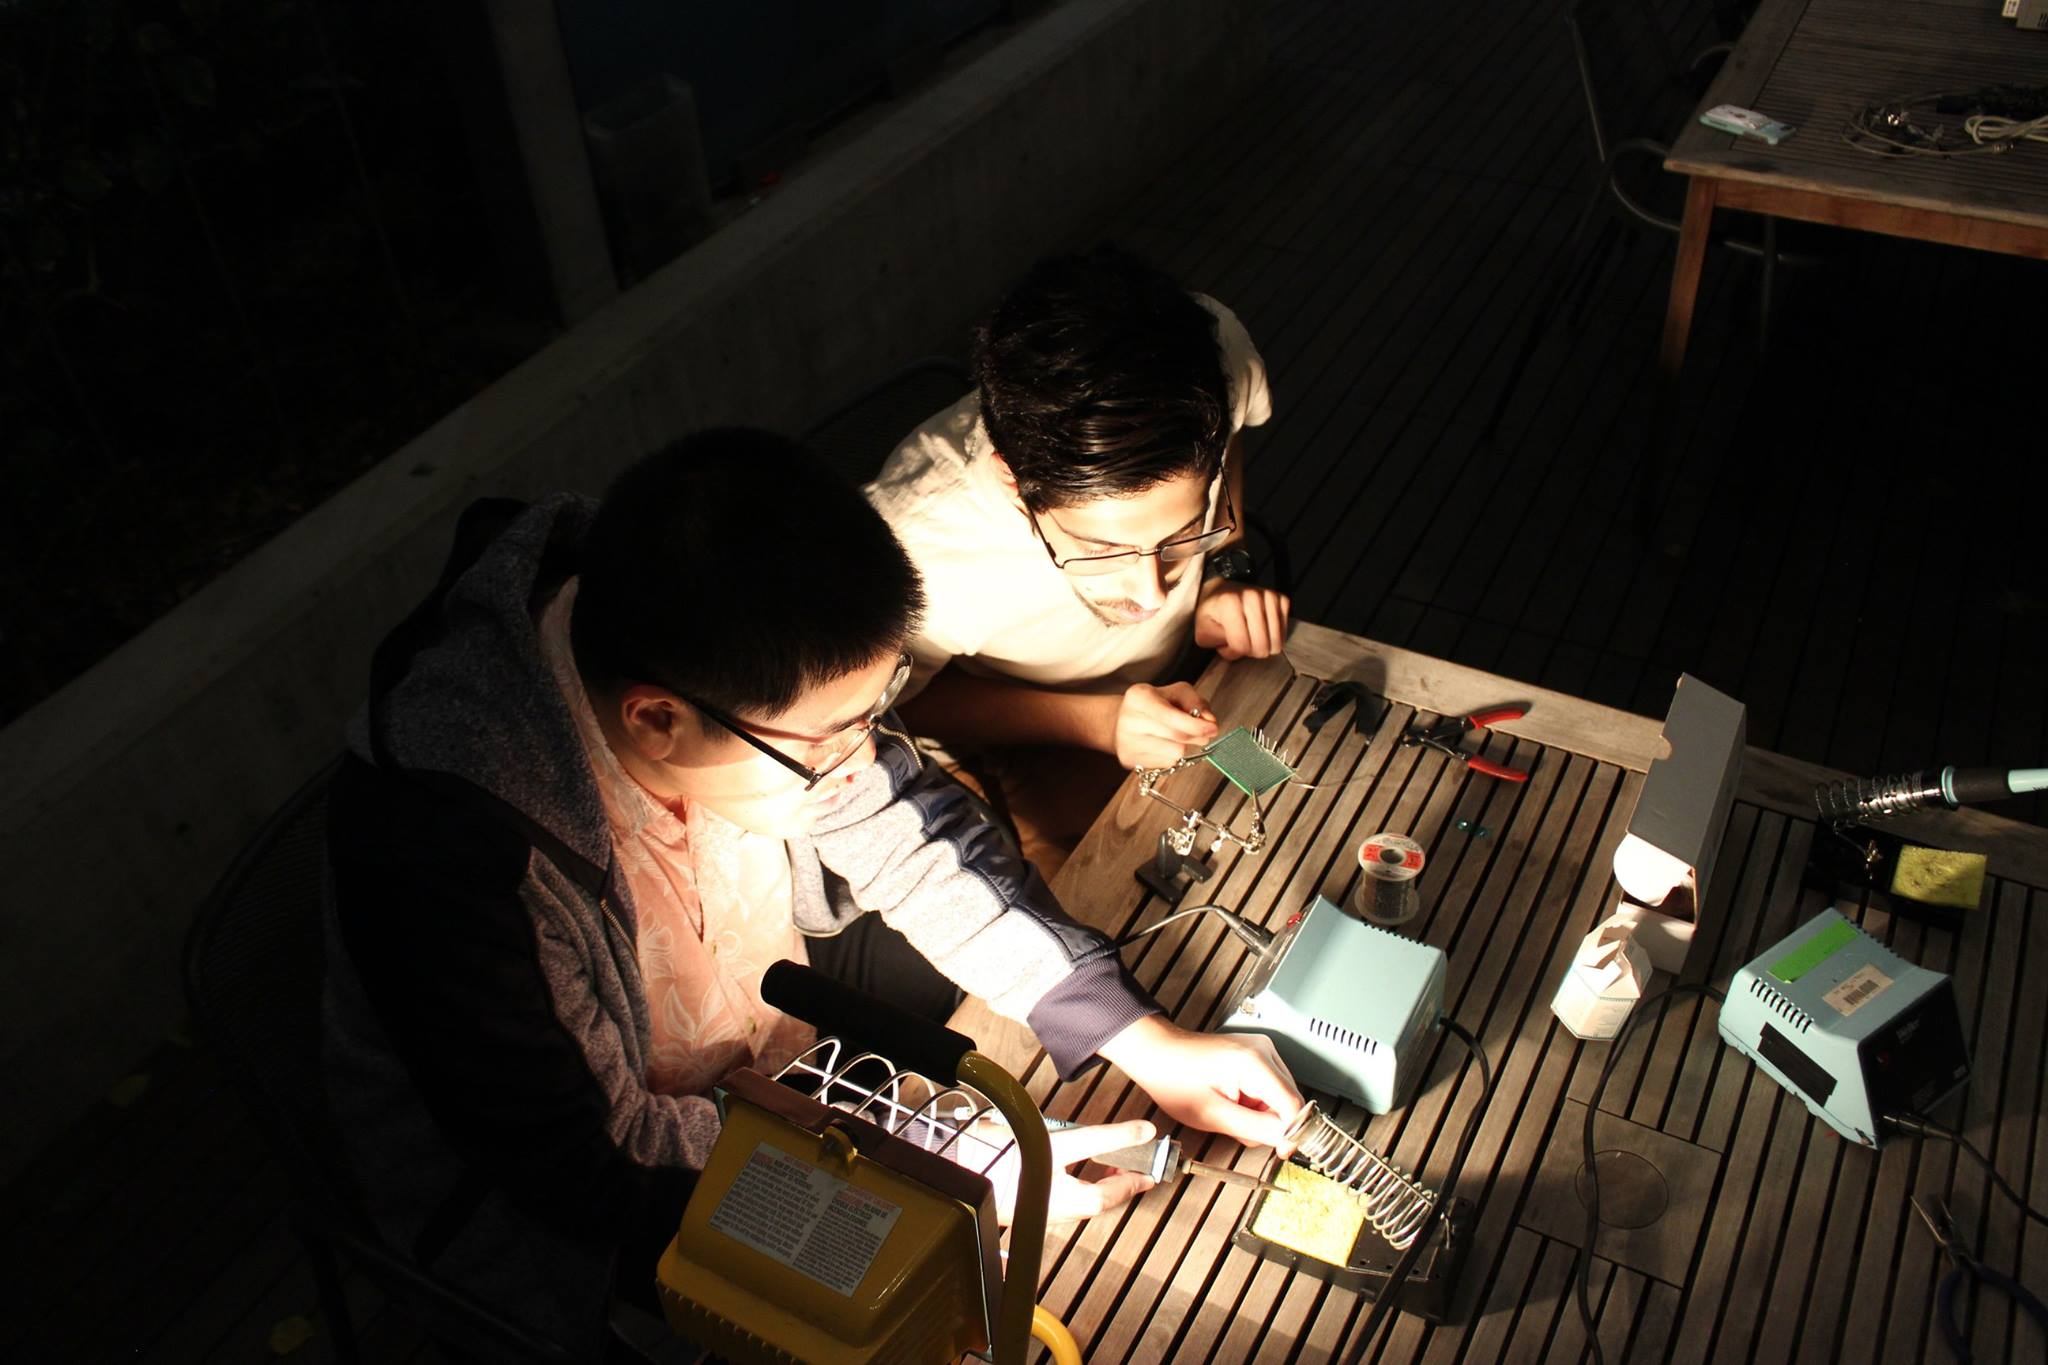 Two students soldering in the outdoor classroom, in the dark